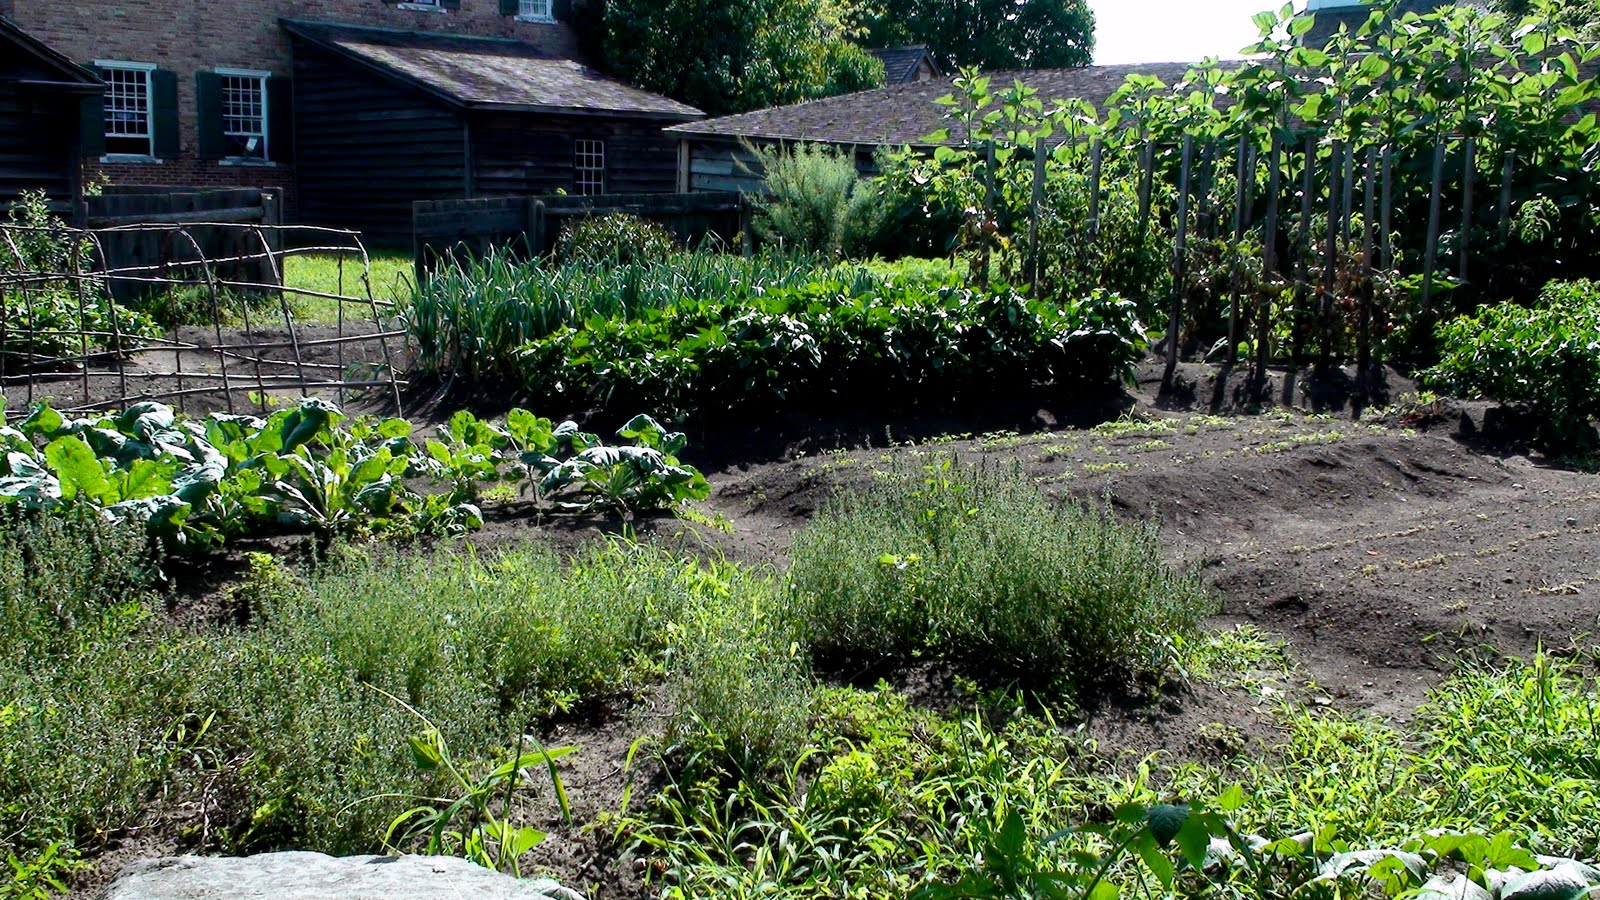 Garden at Upper Canada Village